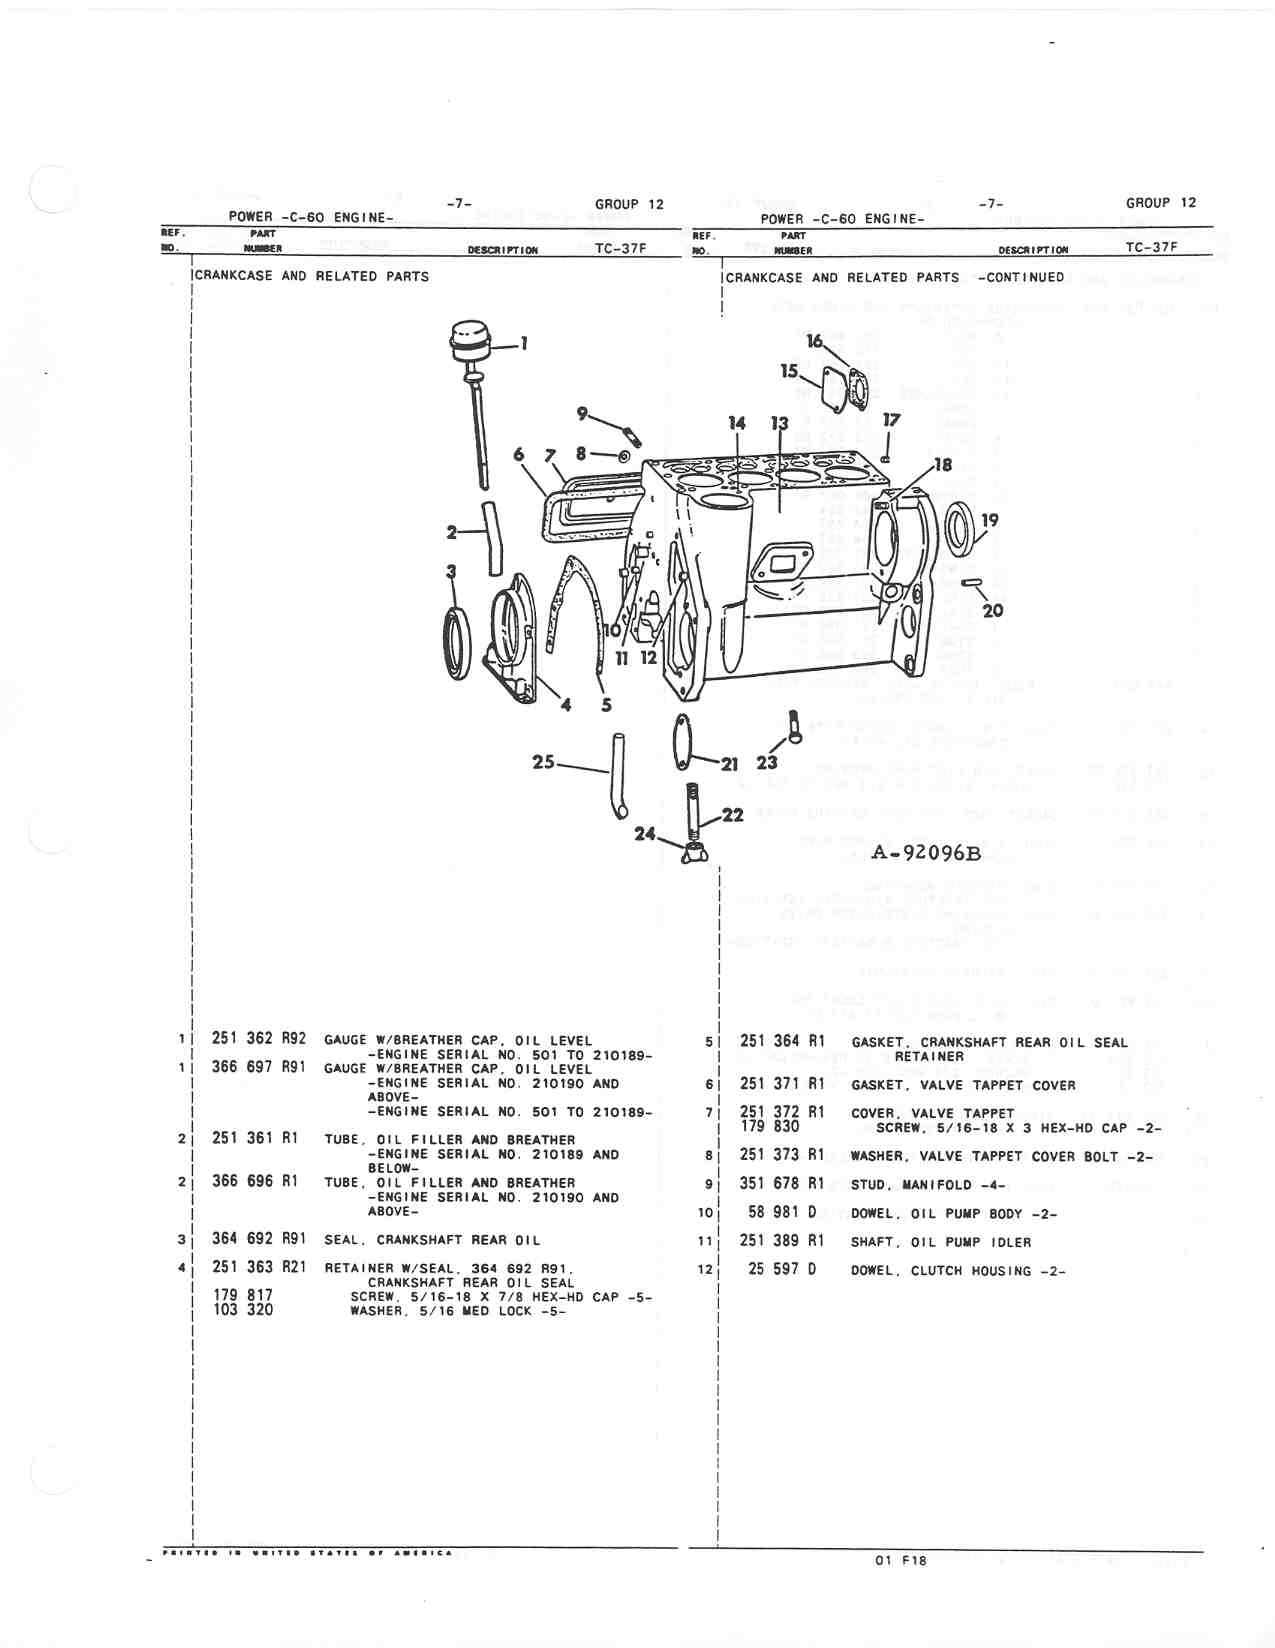 1951 farmall m wiring diagram distribution board layout and snap cub engine tractor